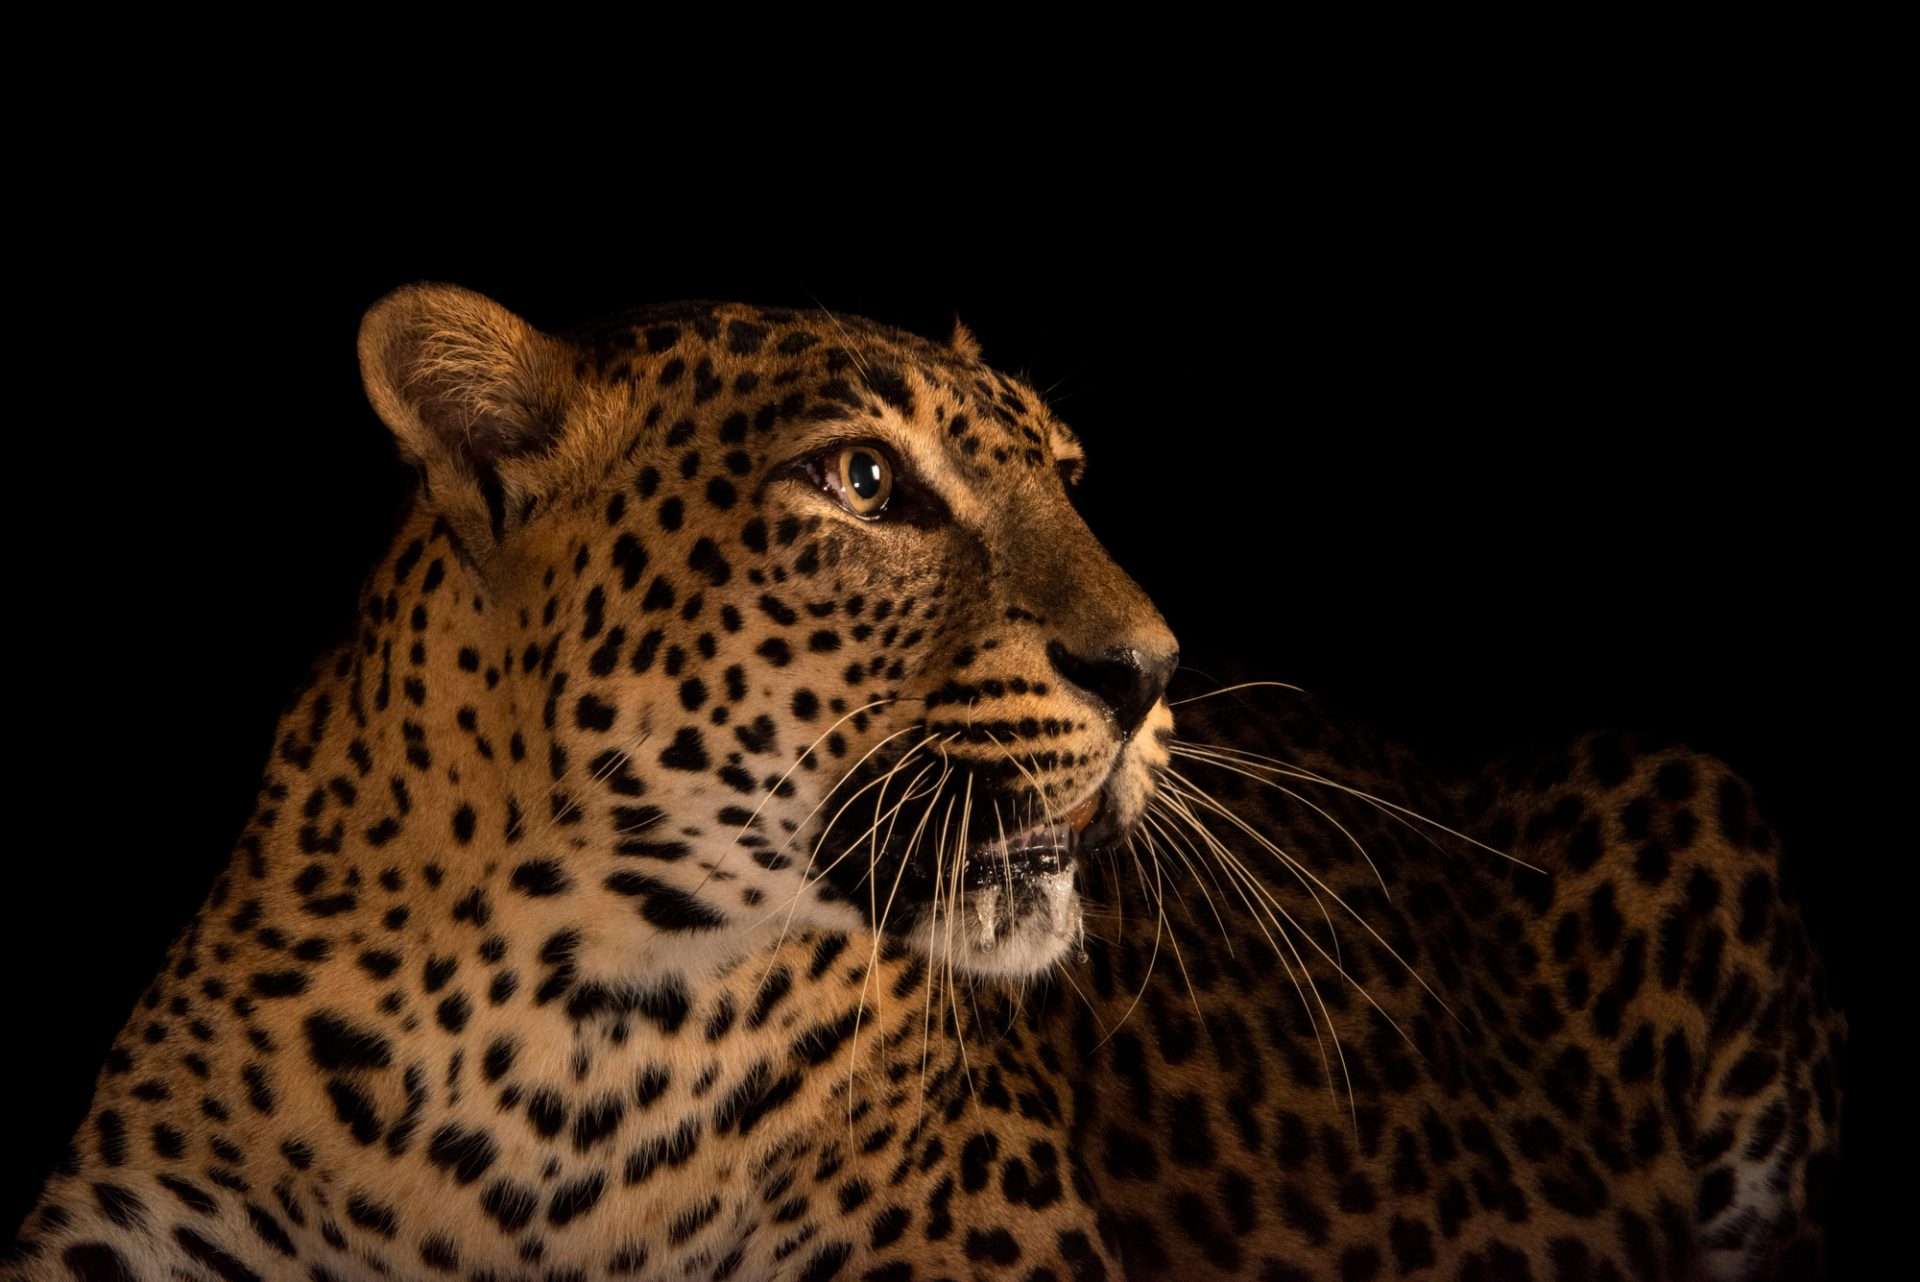 Photo: An endangered female Sri Lankan leopard (Panthera pardus kotiya) at the Singapore Zoo.